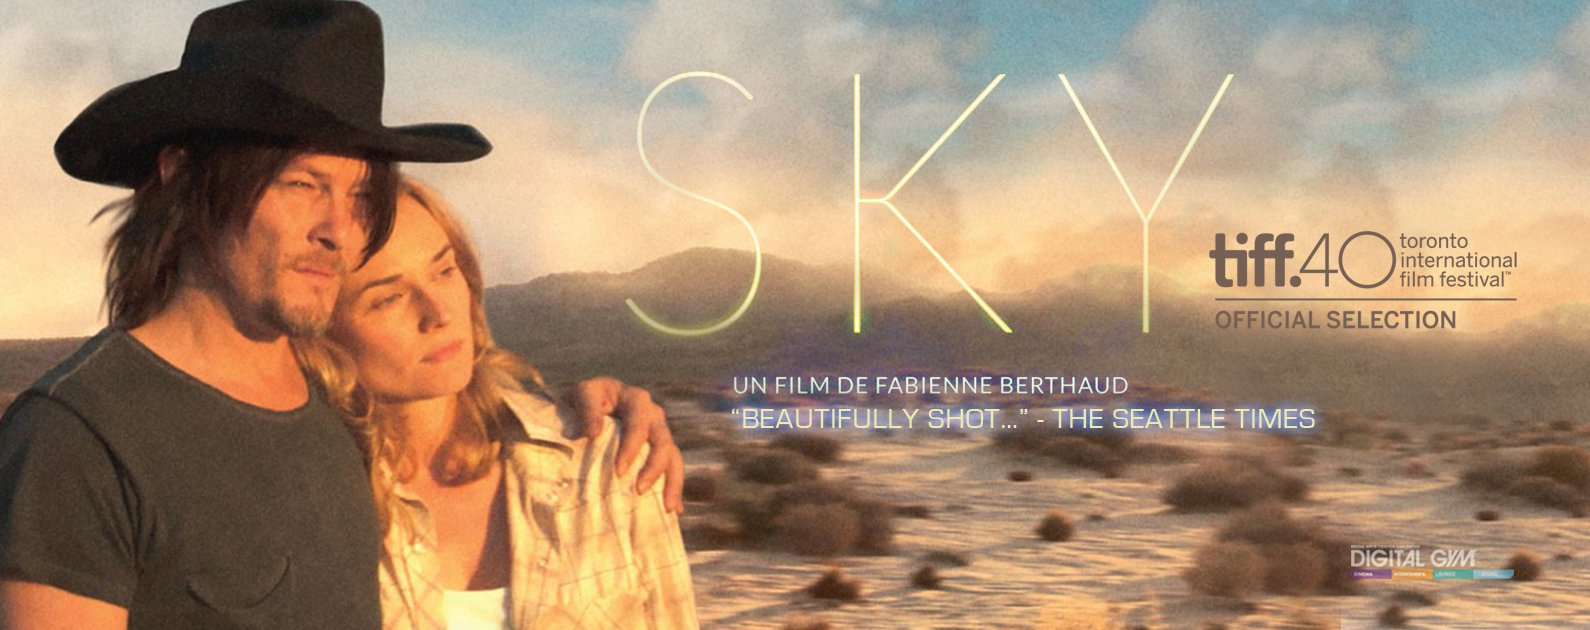 IFC Films' French American Road Trip Movie, SKY, Now Playing (April 29 – May 5)